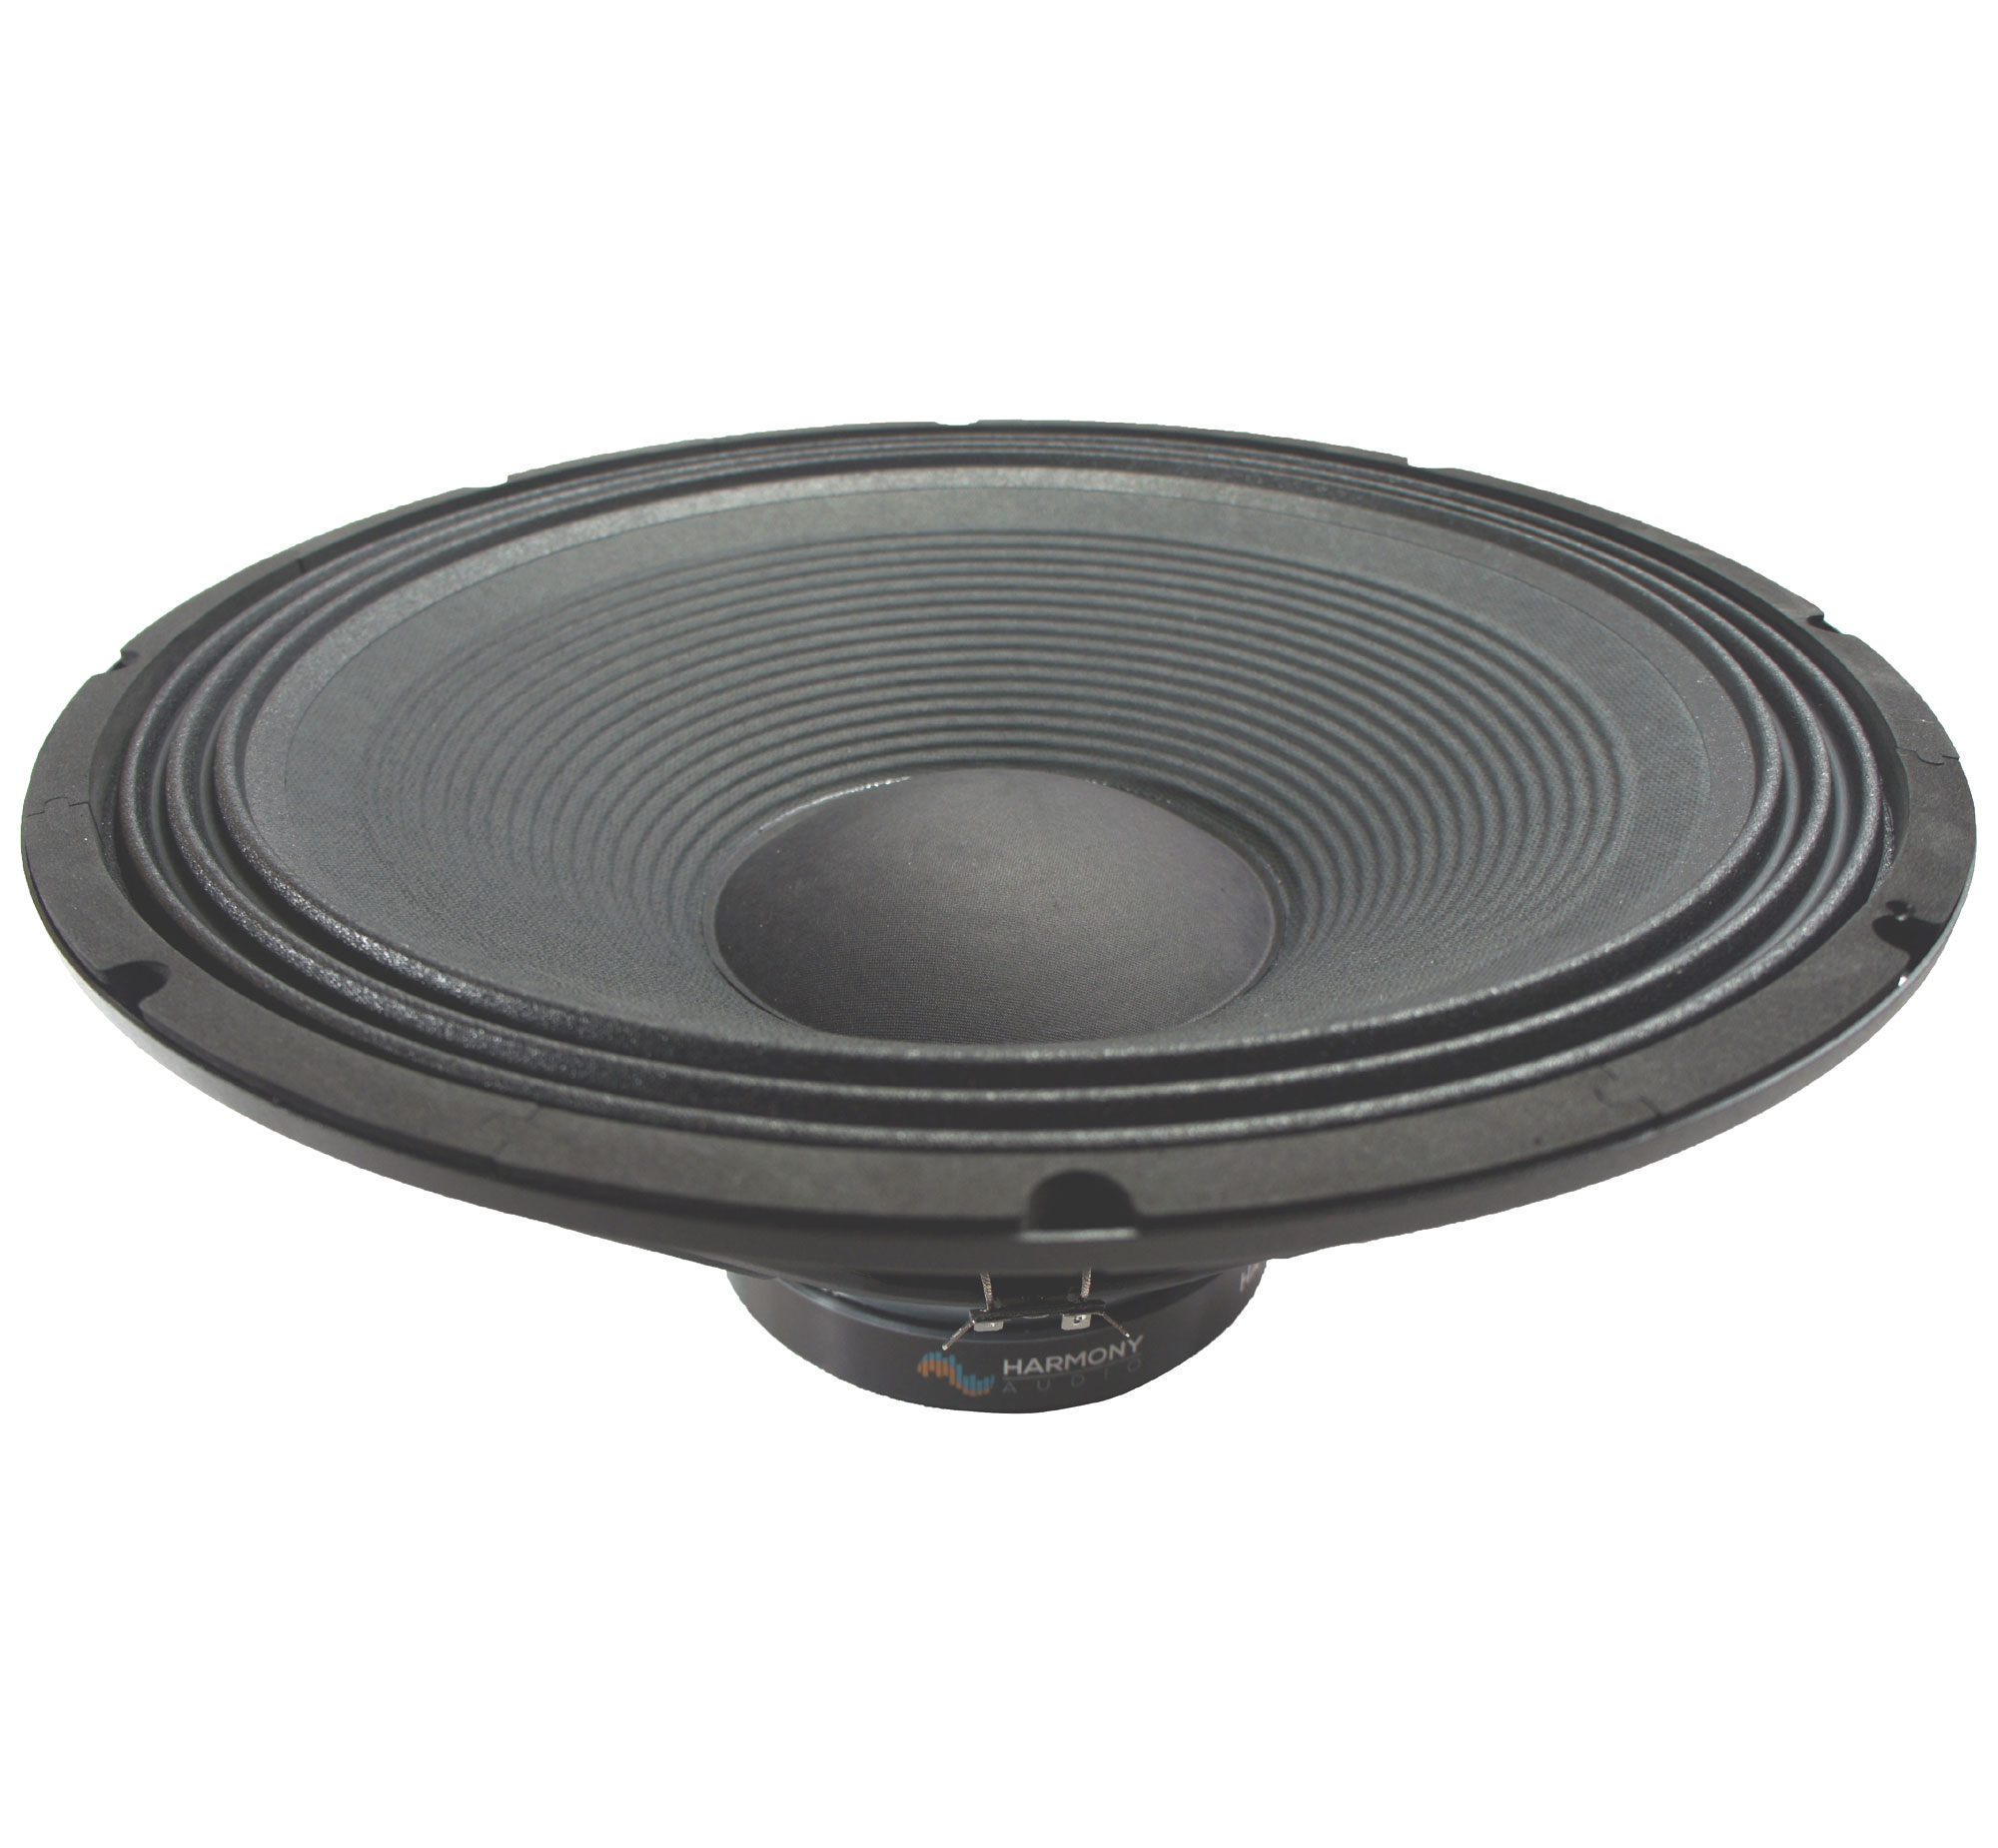 """Harmony HA-P18WS8 Replacement 18"""" PA Speaker Woofer for Mackie Thump18S Sub"""